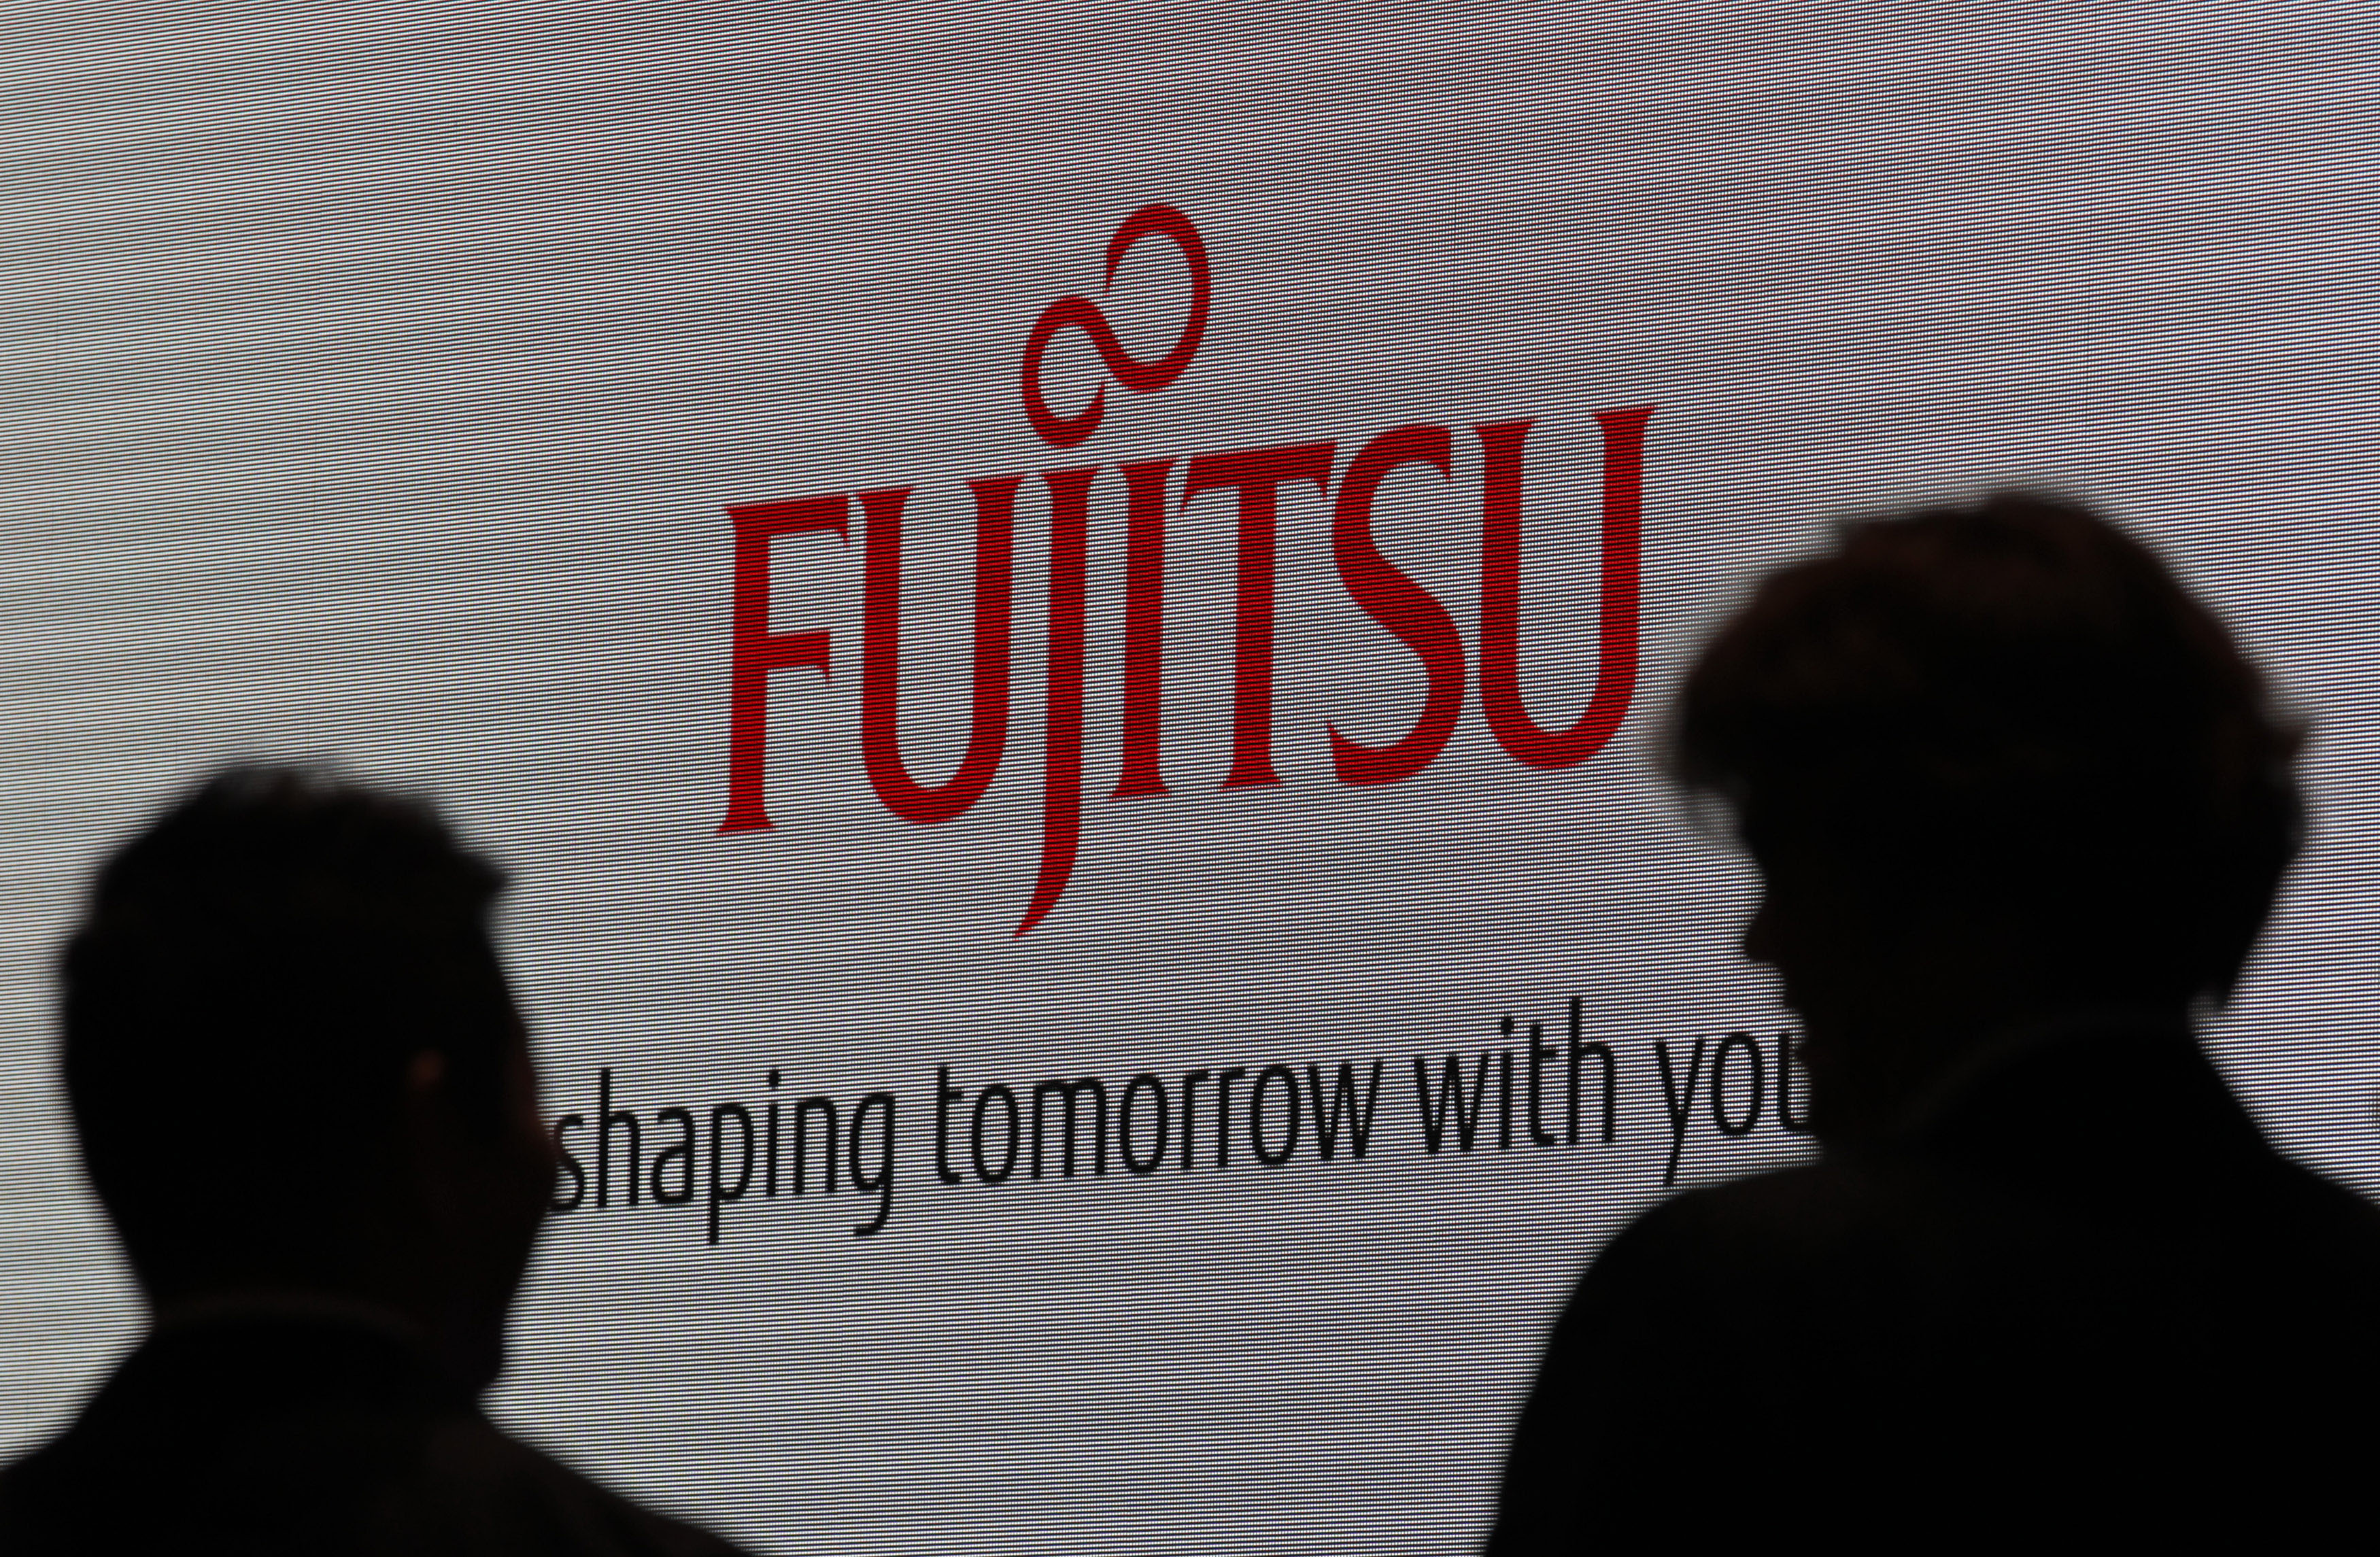 People are silhouetted against a screen displaying a logo of Fujitsu at CEATEC JAPAN 2012 electronics show in Chiba, east of Tokyo, October 2, 2012. Japan's largest cutting-edge IT and electronics trade show started on Tuesday and runs until October 6 at Makuhari Messe convention center. REUTERS/Yuriko Nakao (JAPAN - Tags: BUSINESS) - GM1E8A21I2401